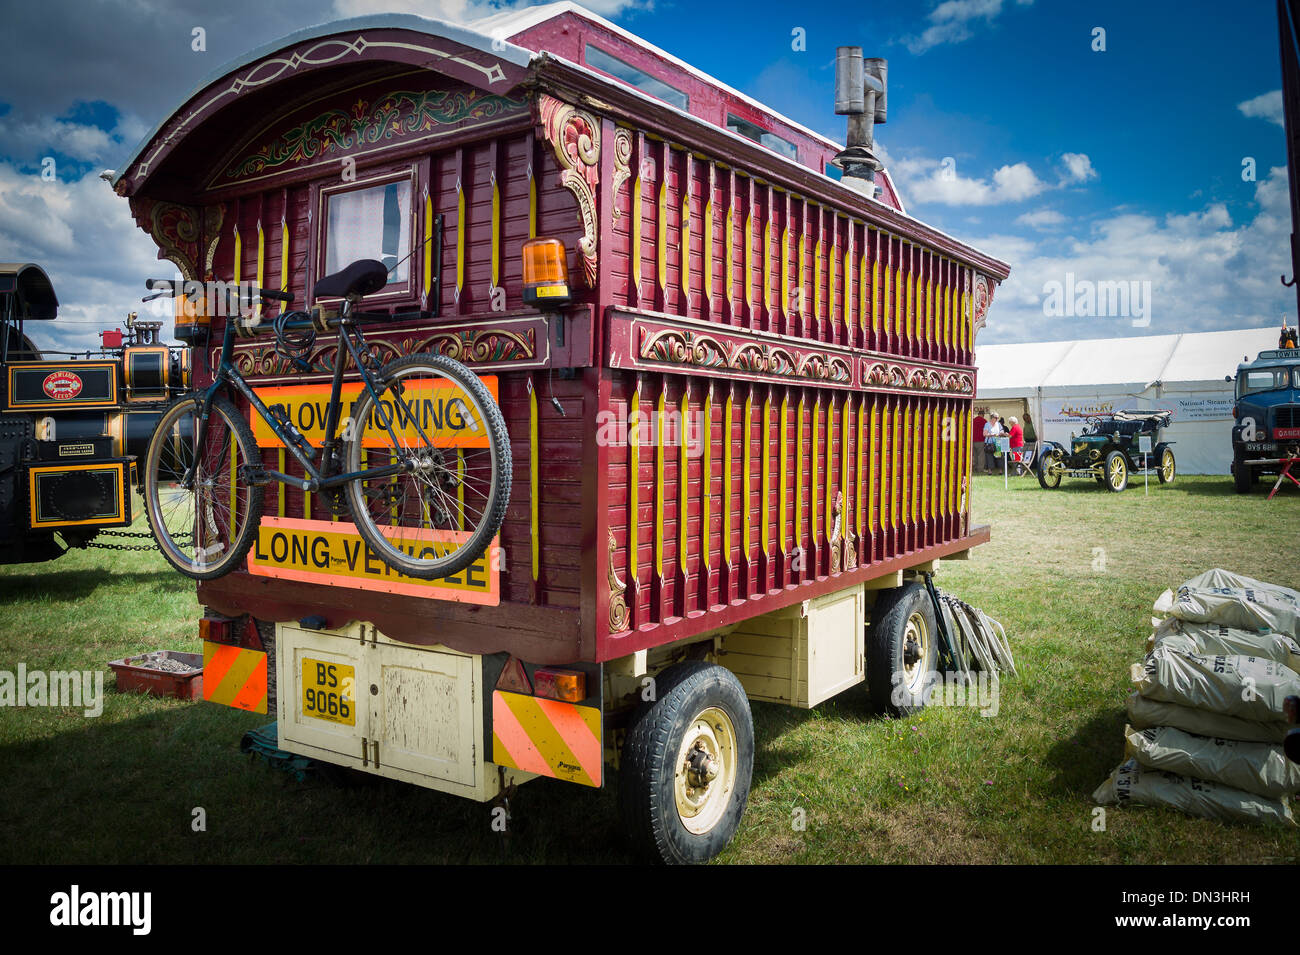 Old Showman's caravan at a nostalgic steam event in UK - Stock Image